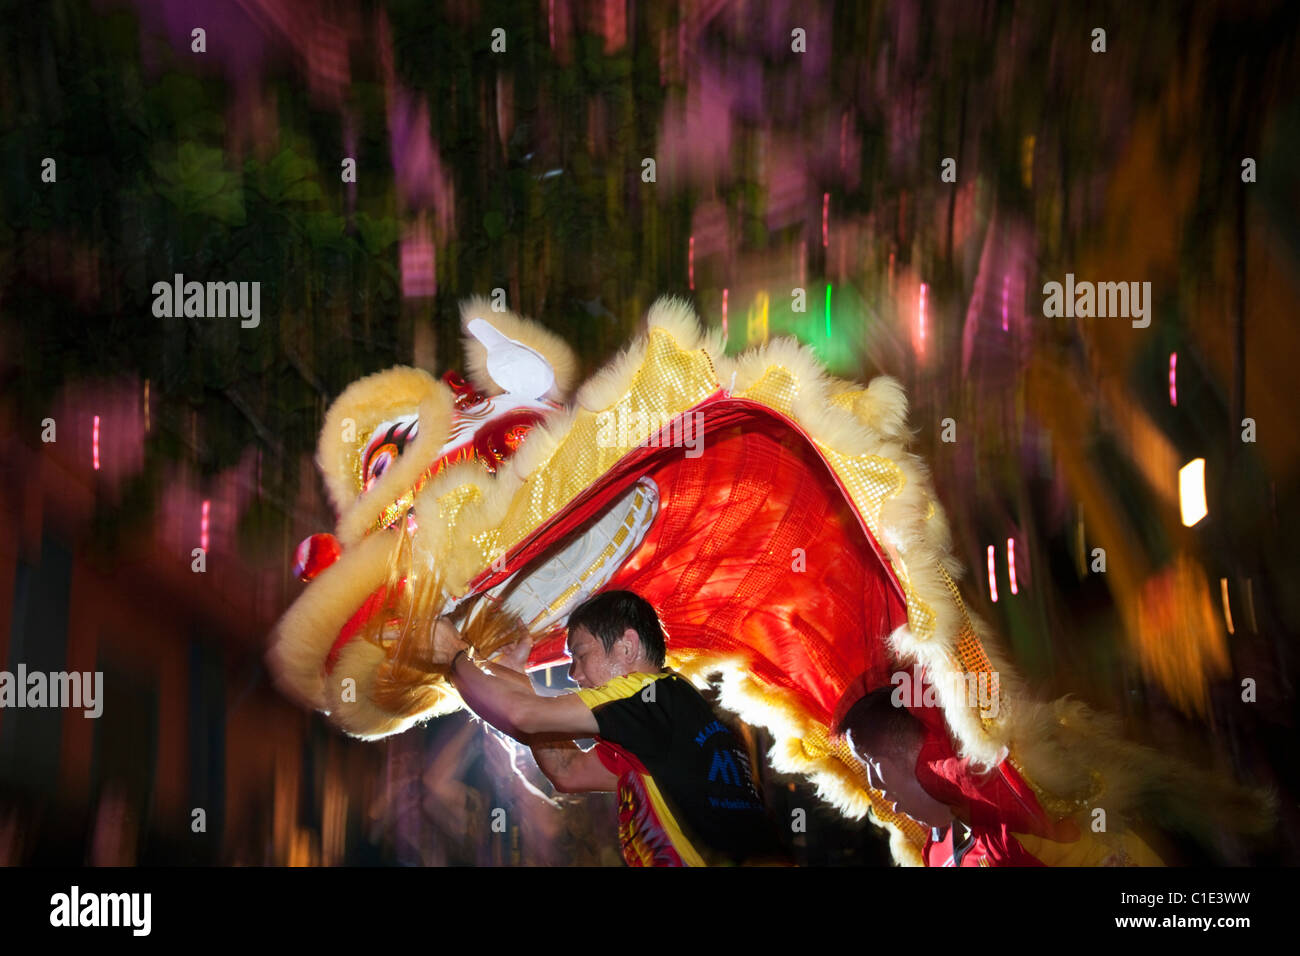 Lion dance performers during Chinese New Year.  Chinatown, Singapore - Stock Image